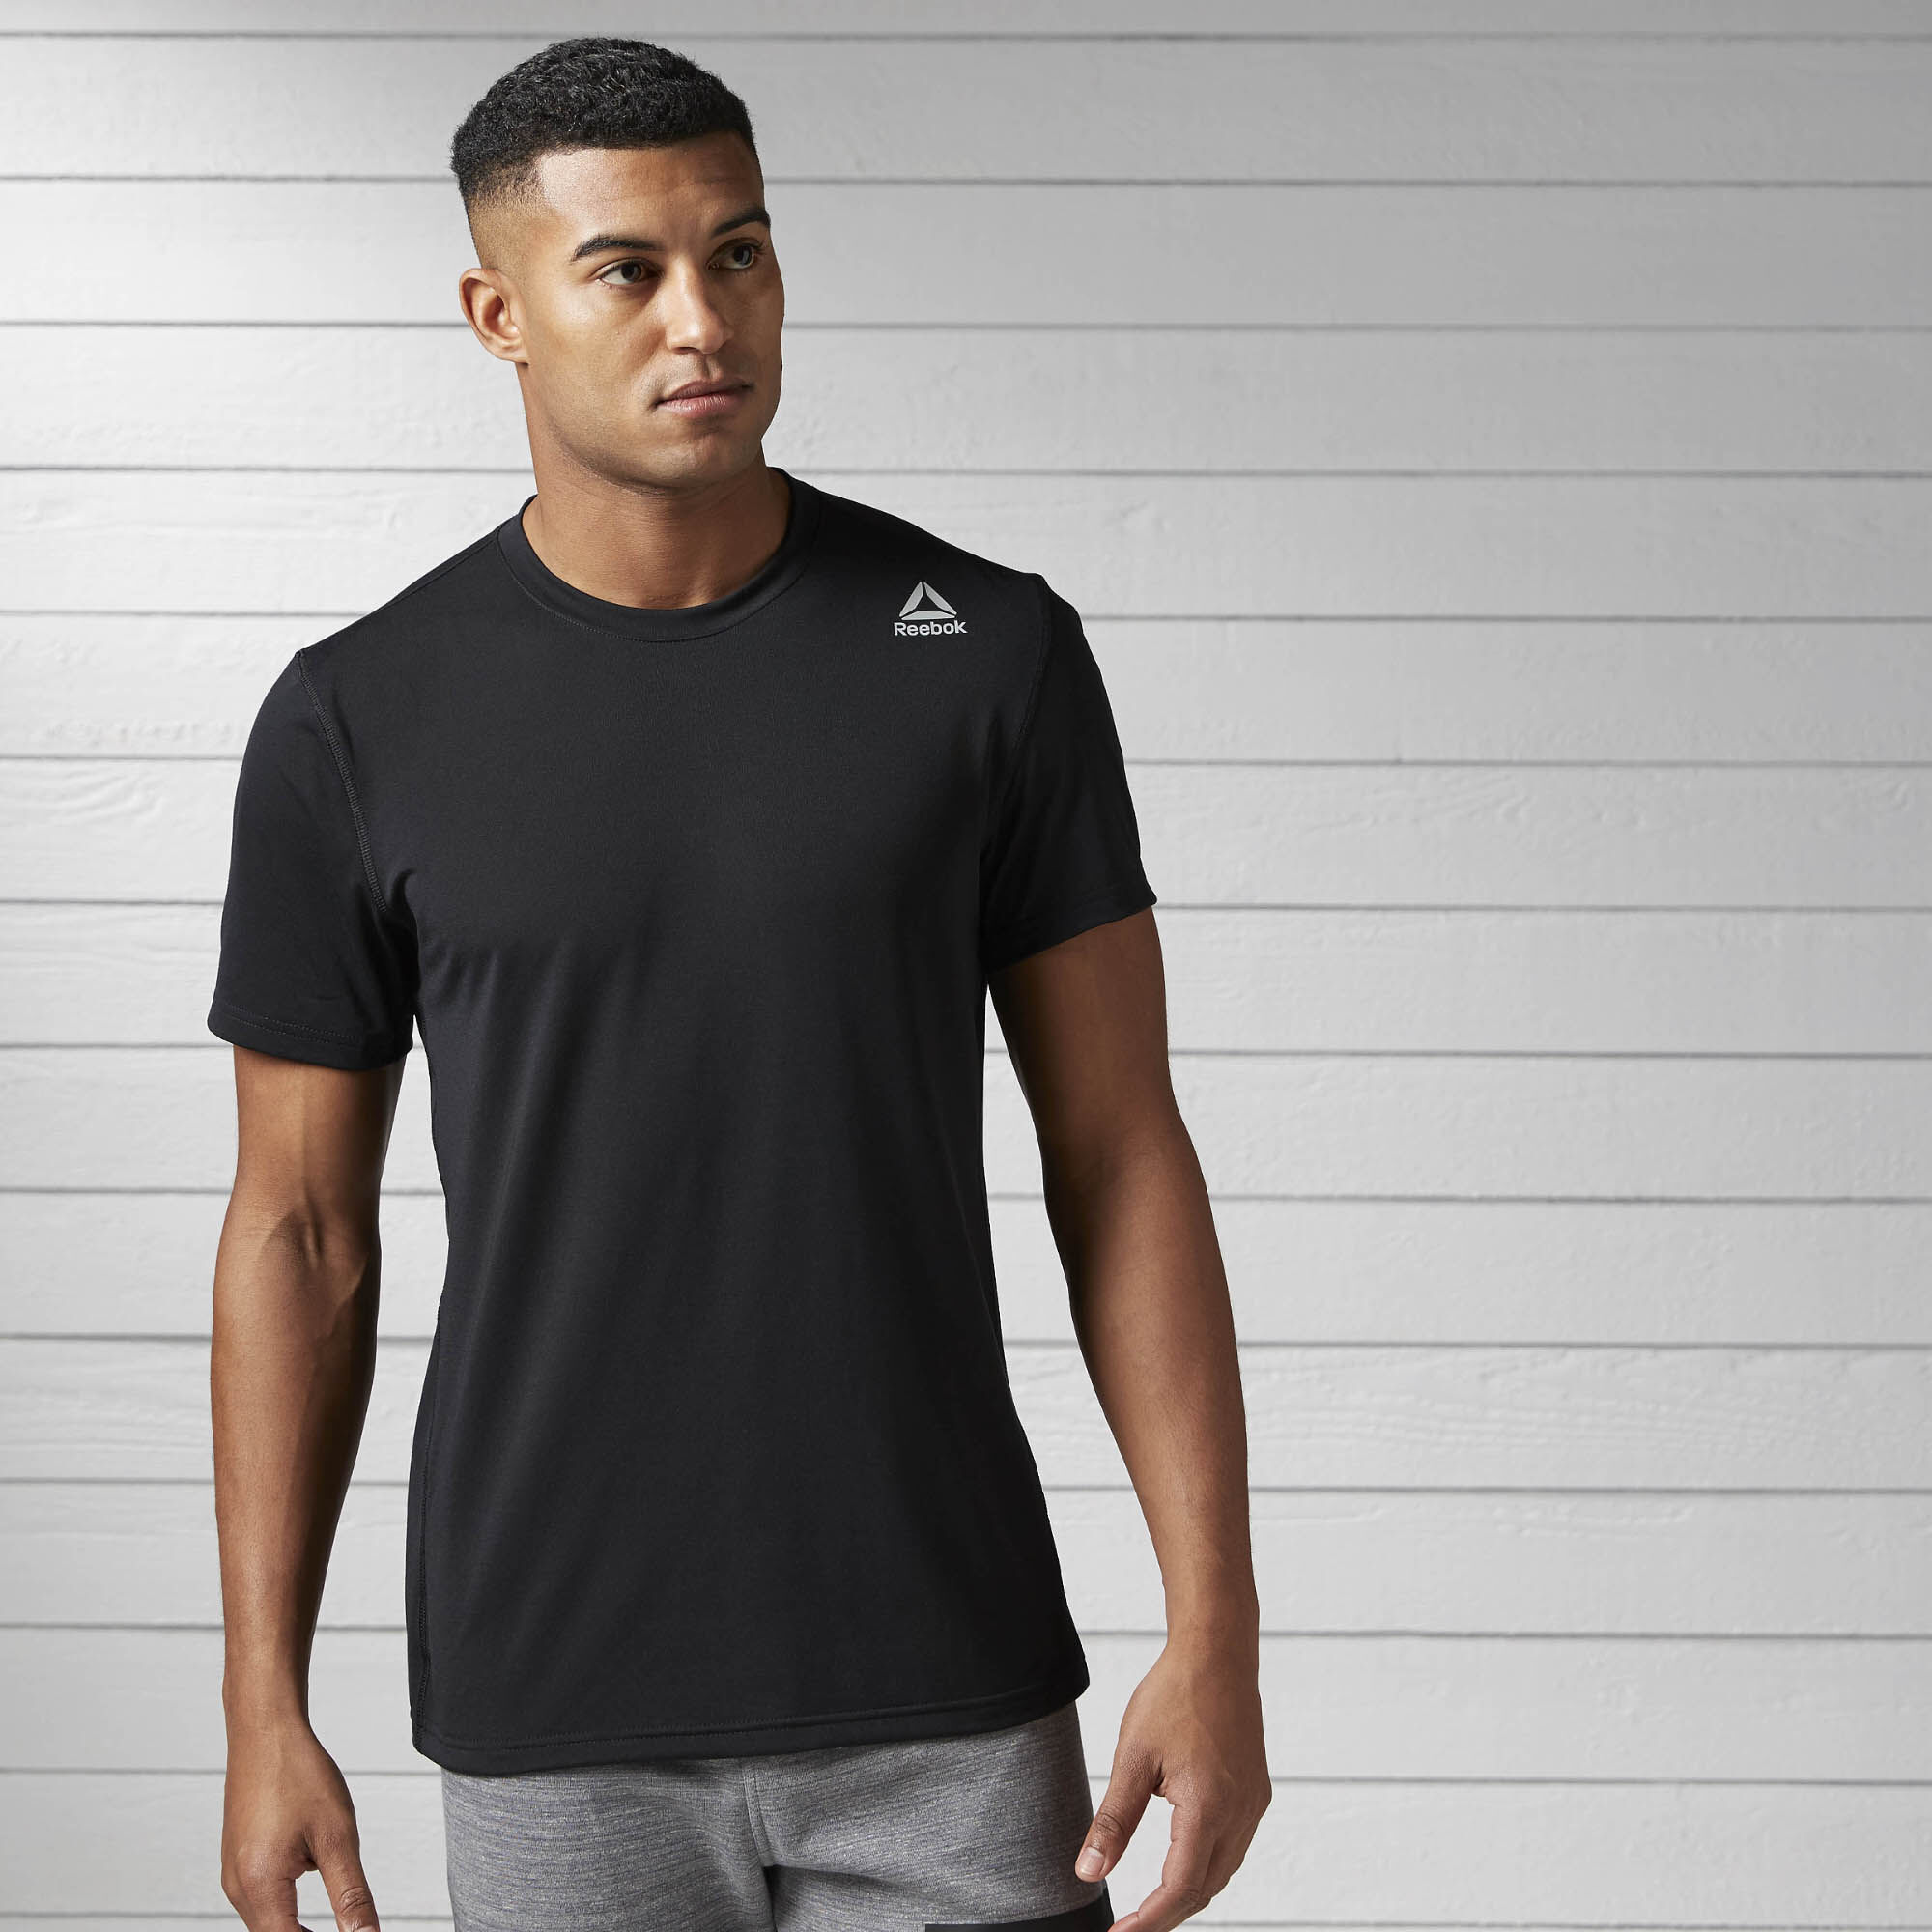 Reebok - Workout Ready Supremium 2.0 Tee Black BK6310